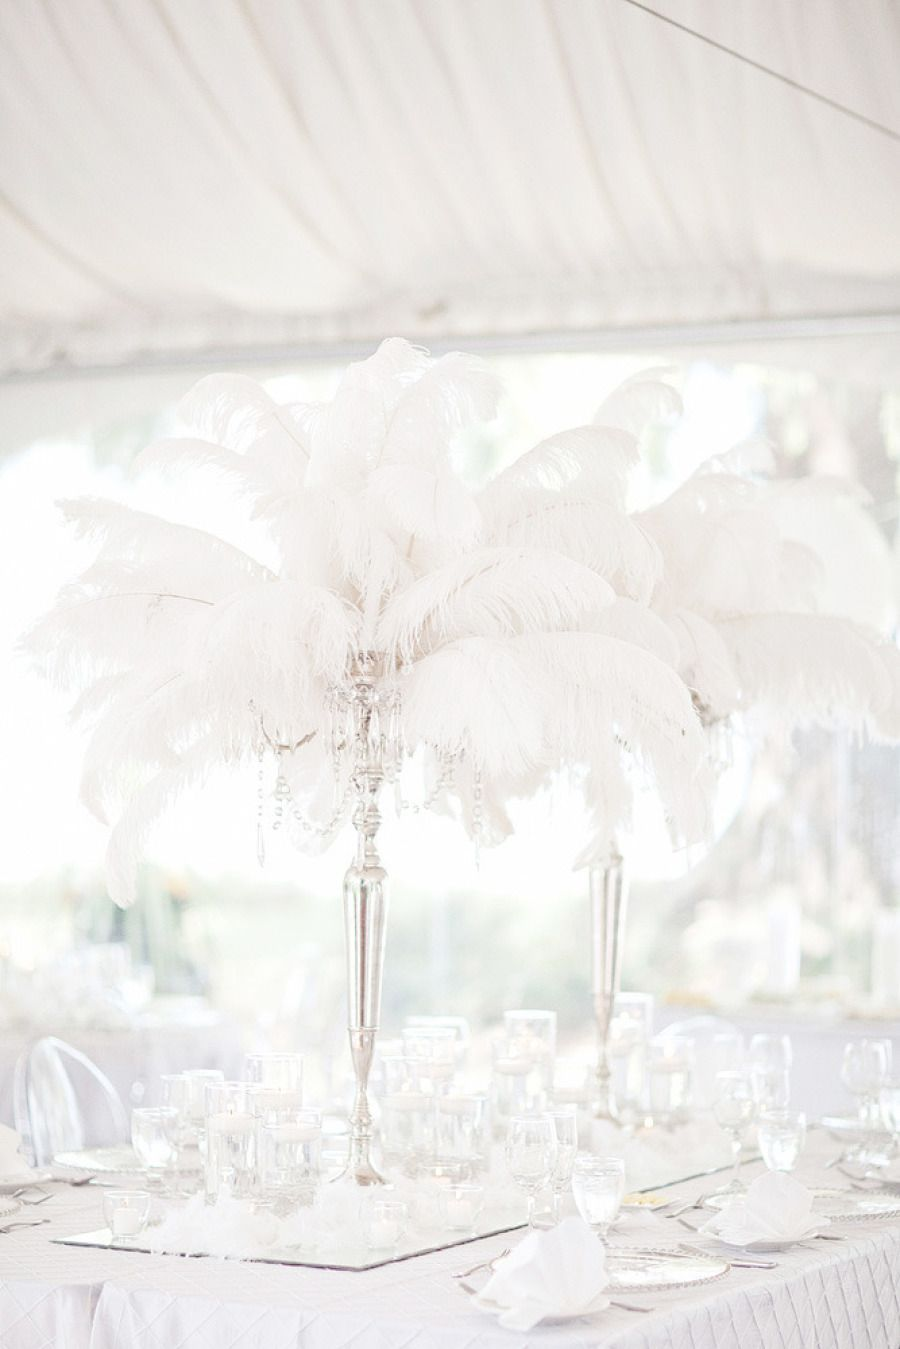 Trending: Feather Wedding Details That Soar New Stylish Heights ...